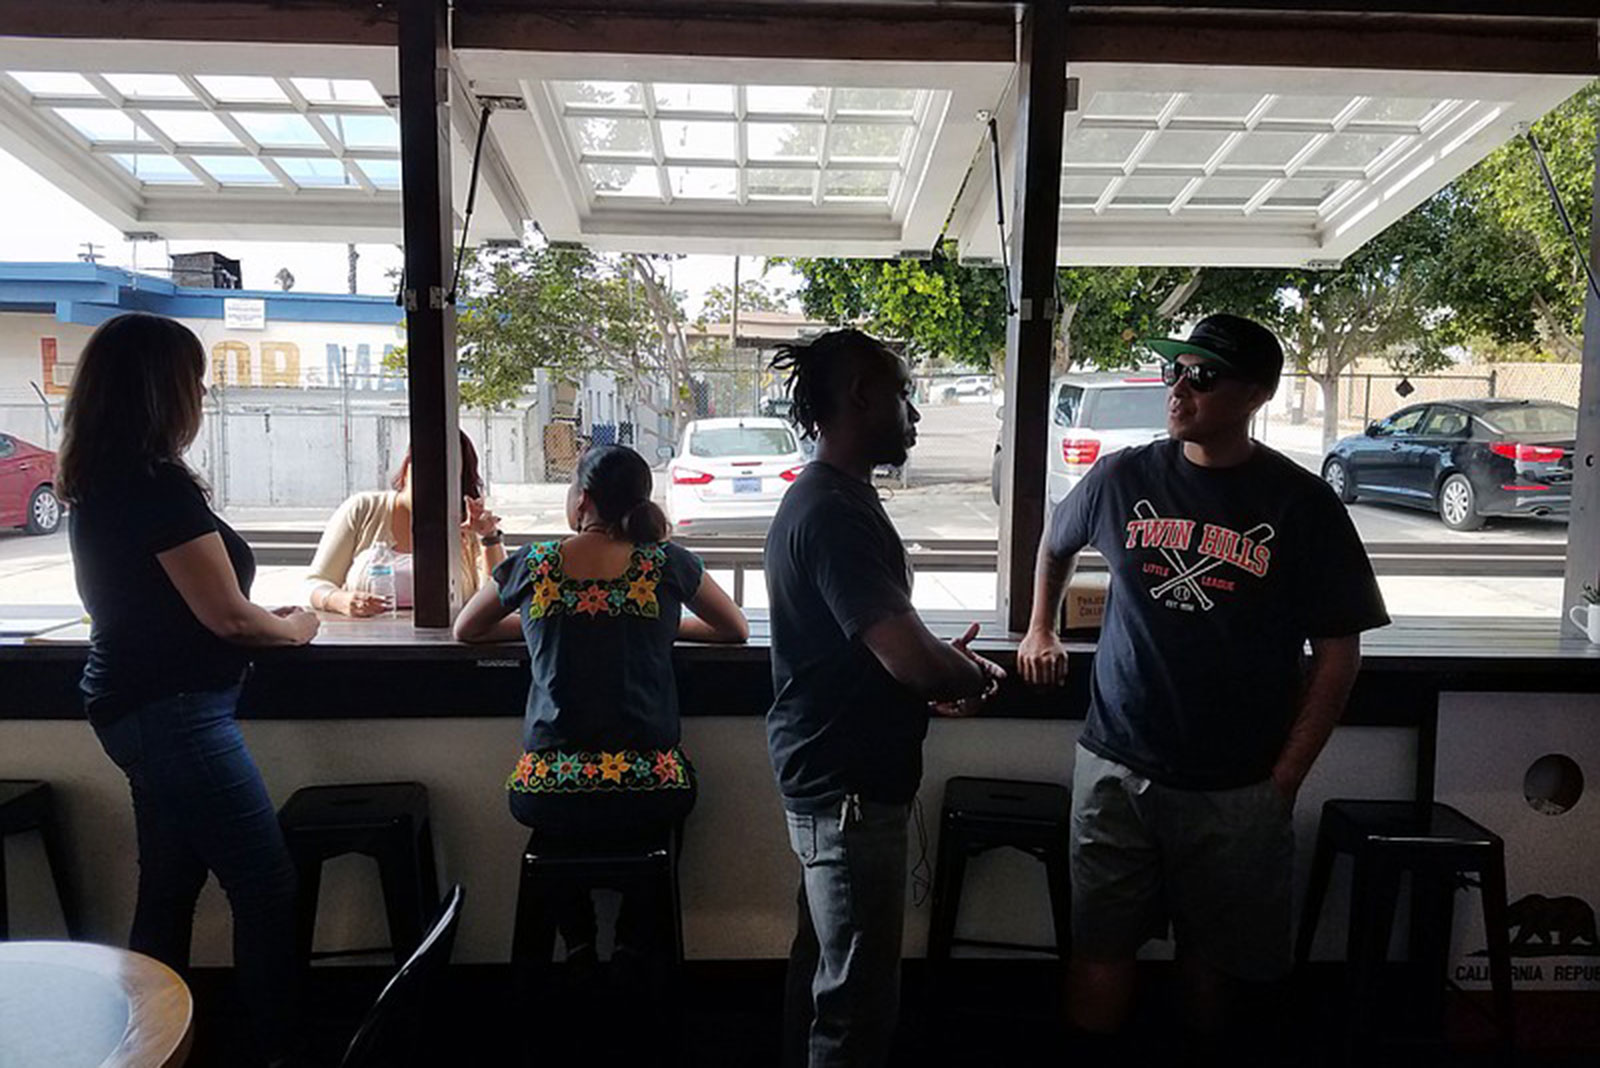 Tommy Walker and other owners of Project Reo Collective gather at their coffee shop, Sept. 30, 2018